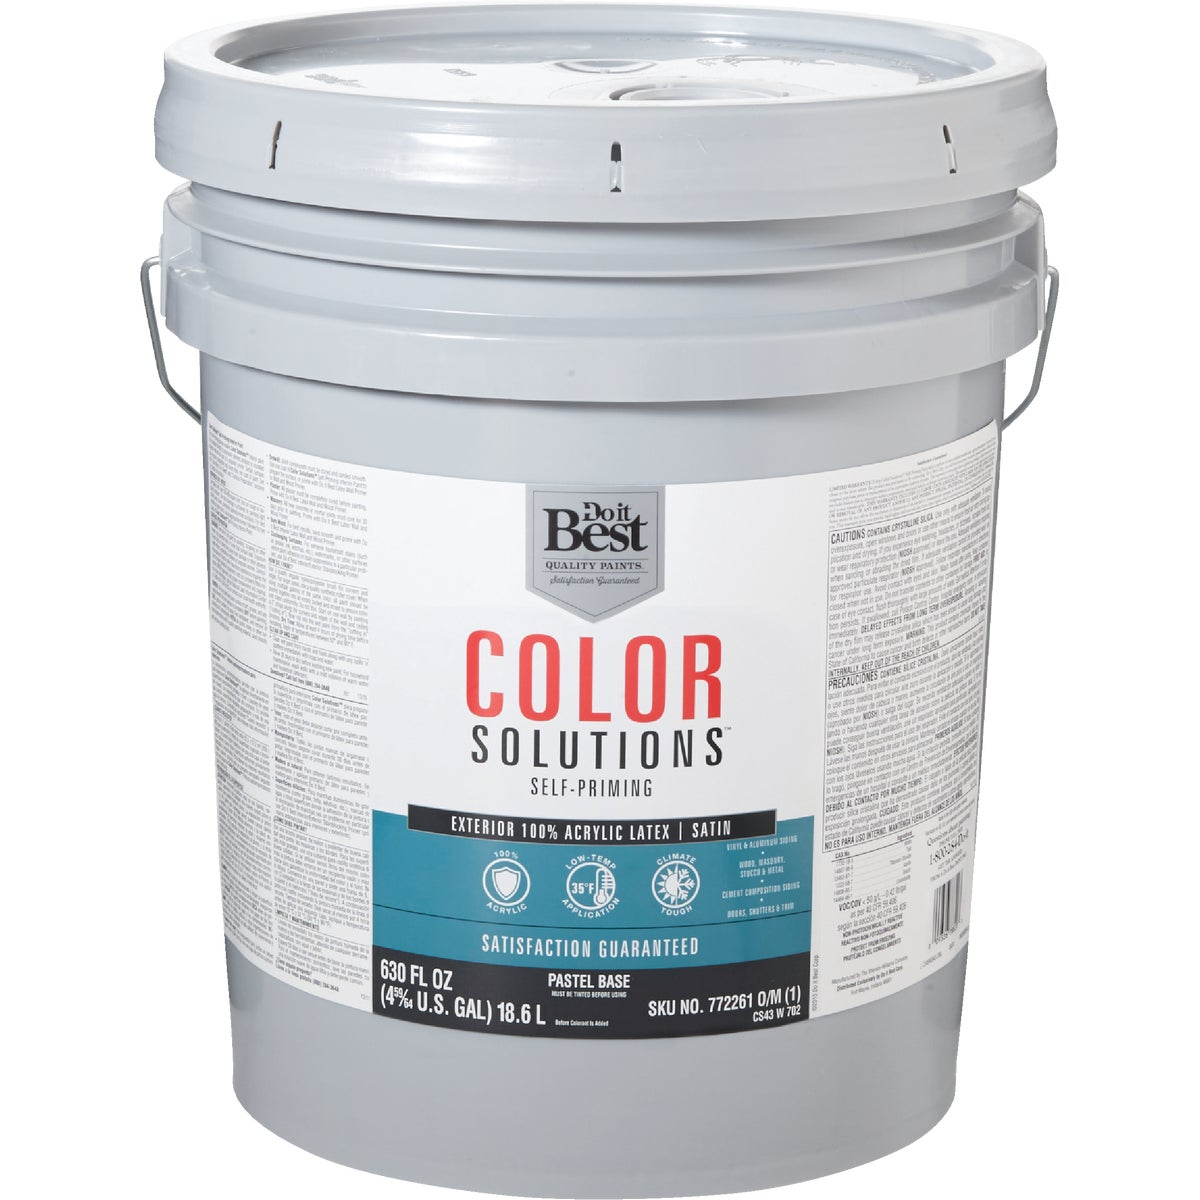 EXT SAT PASTEL BS PAINT - CS43W0702-20 by Do it Best